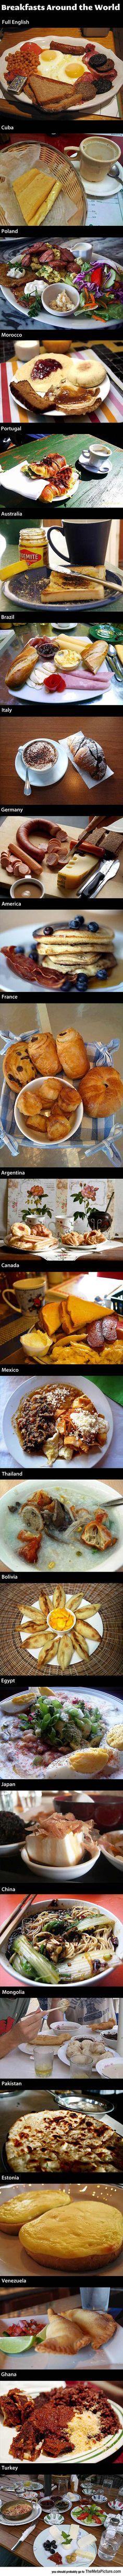 The Way People Eat Breakfast Around The World - The Meta Picture